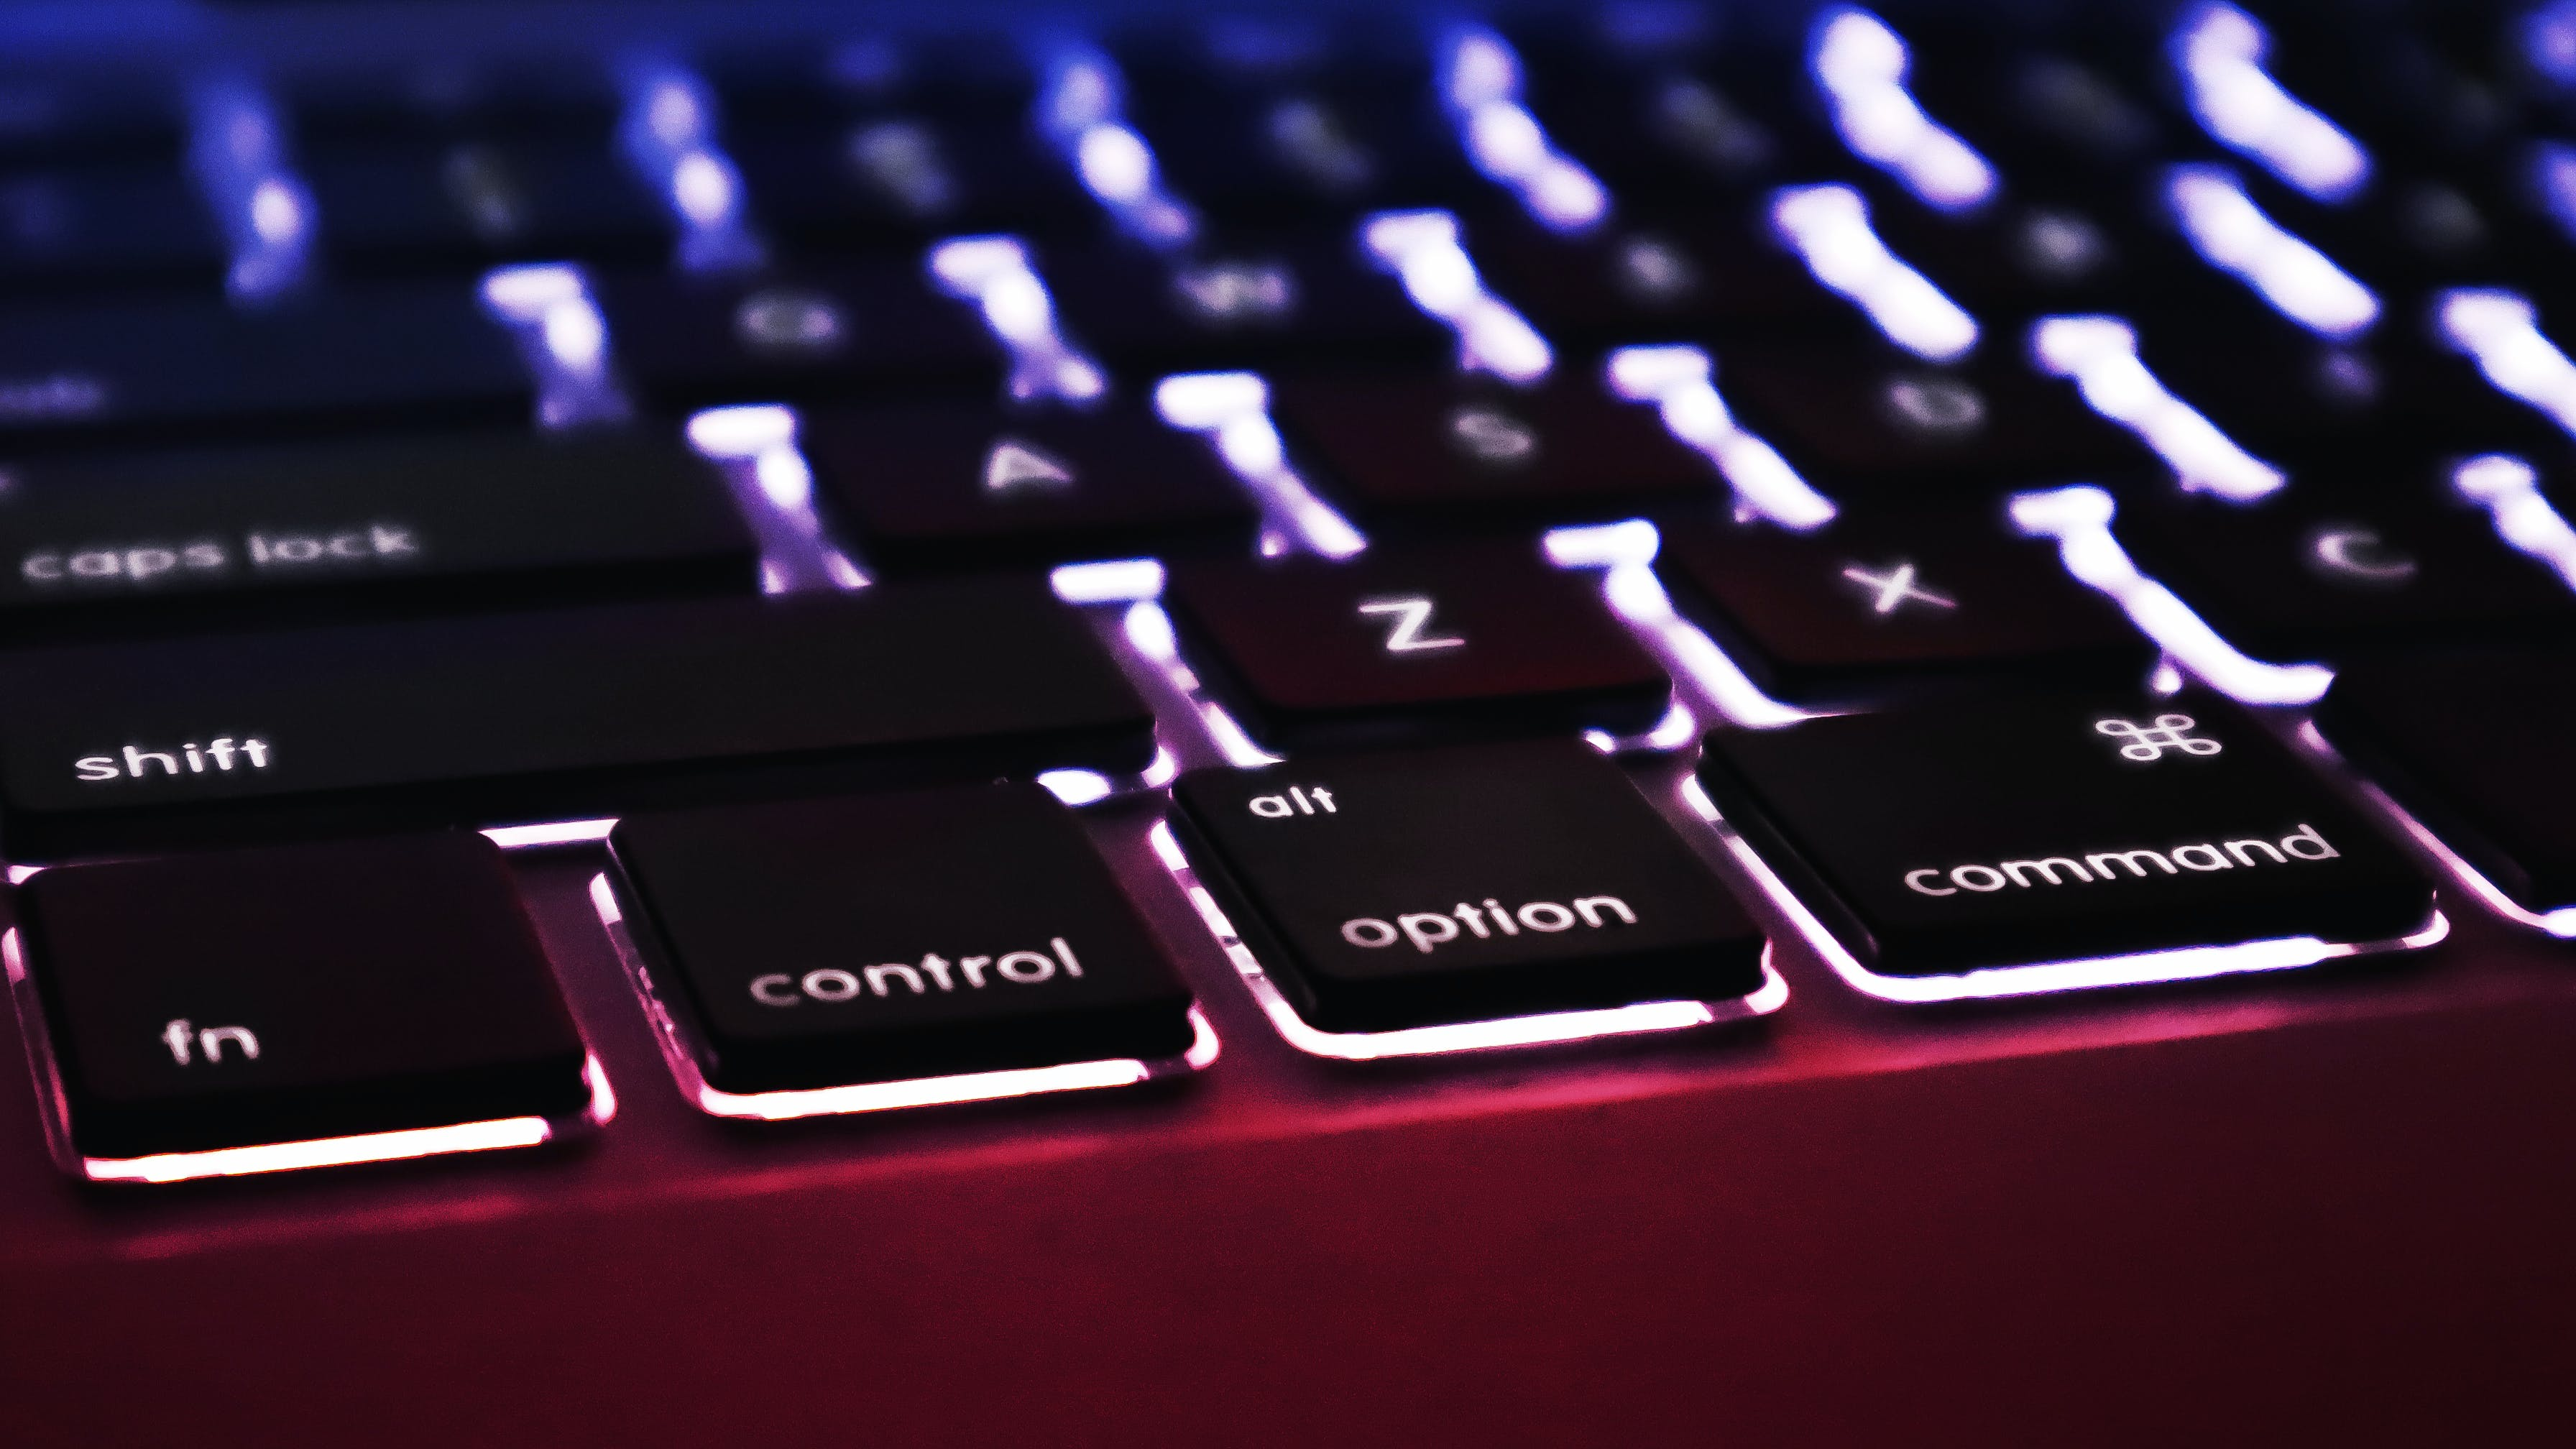 Free stock photo of #keyboard #keys #closeup #colorfull #bright #red, #office #work